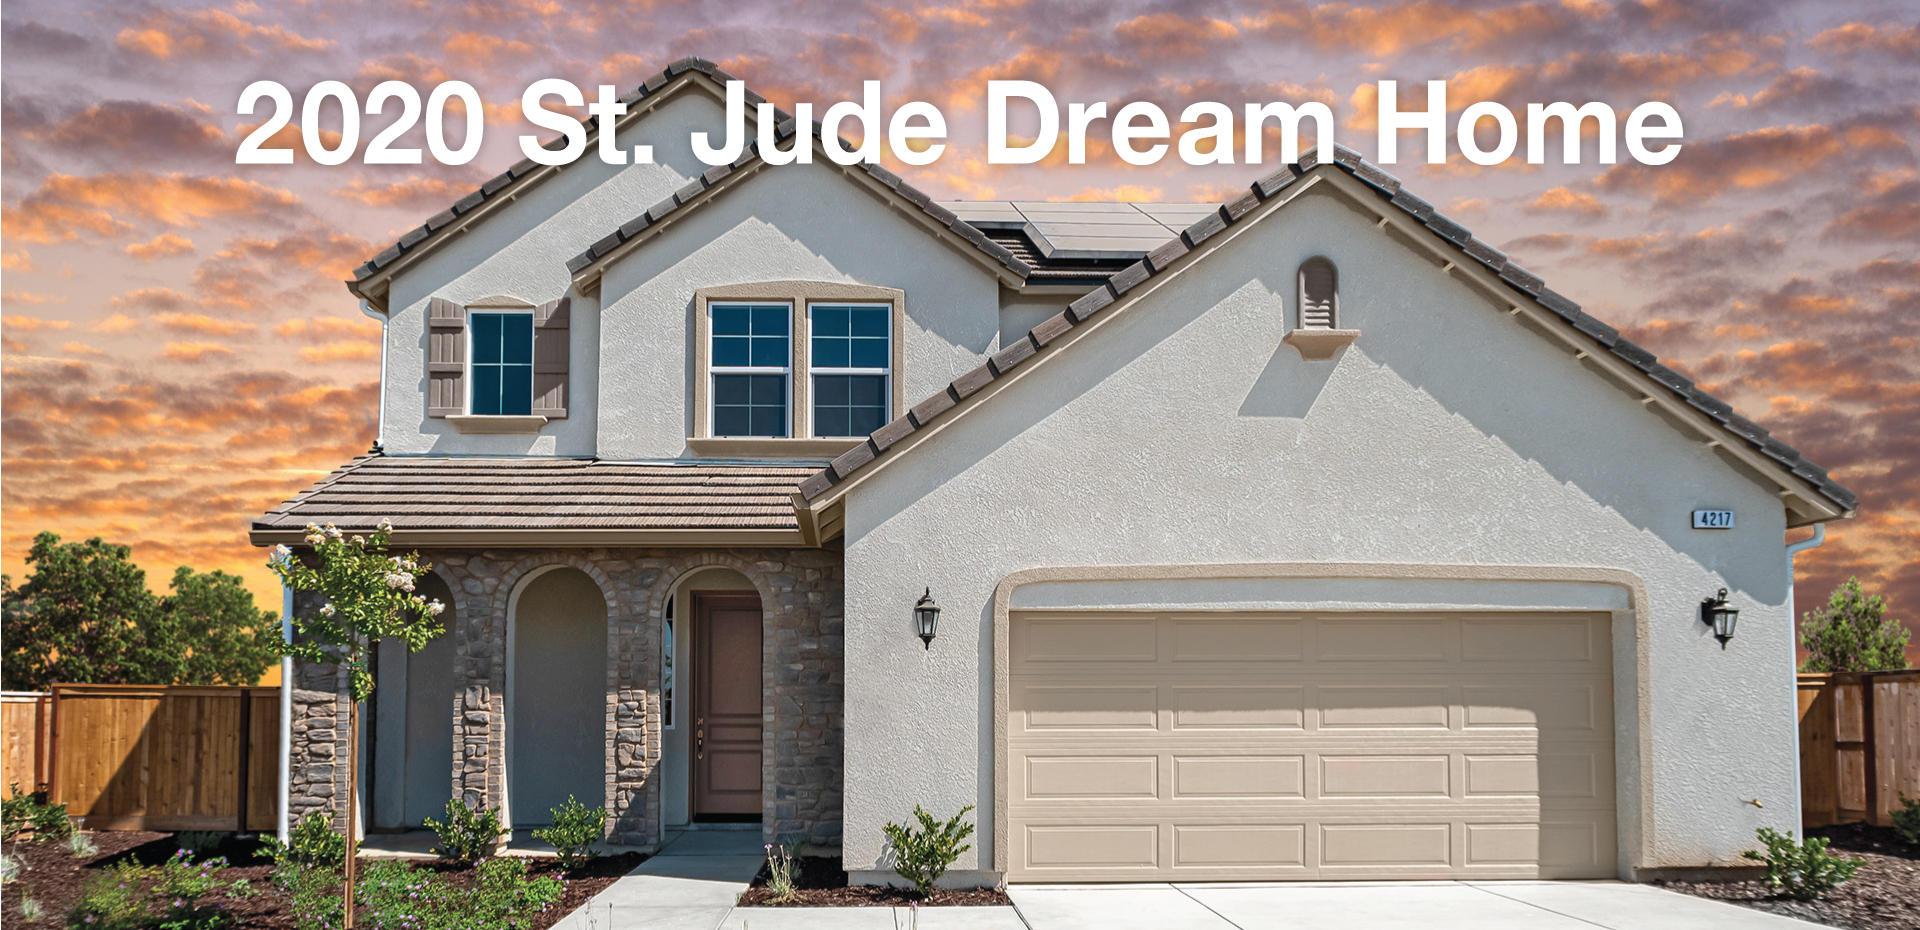 Last Chance To Reserve Your Ticket For The 2020 St. Jude Dream Home! Call (800) 543-5887 Today!